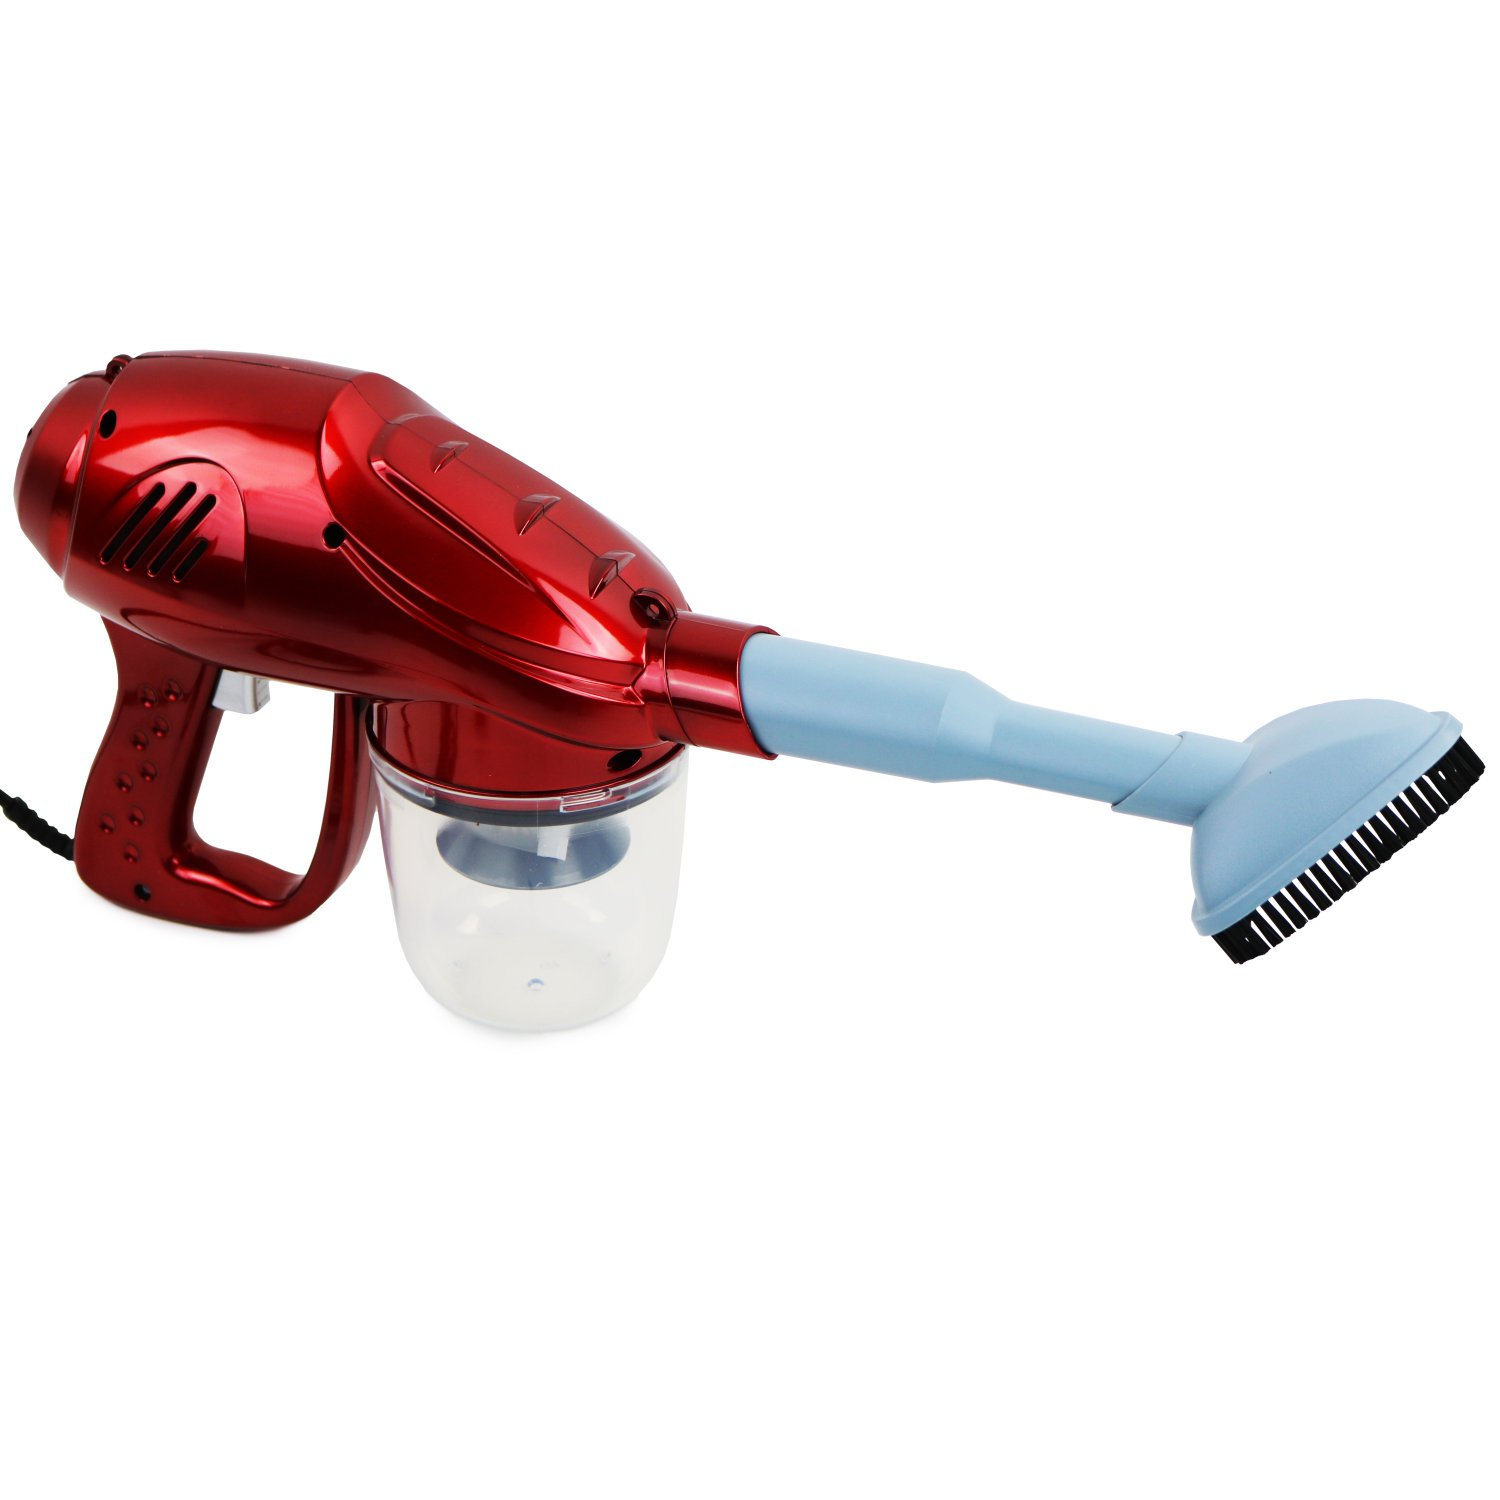 Maxi Vac Handheld Cleaner 600w Perfect For Quick Clean Up Vacuum